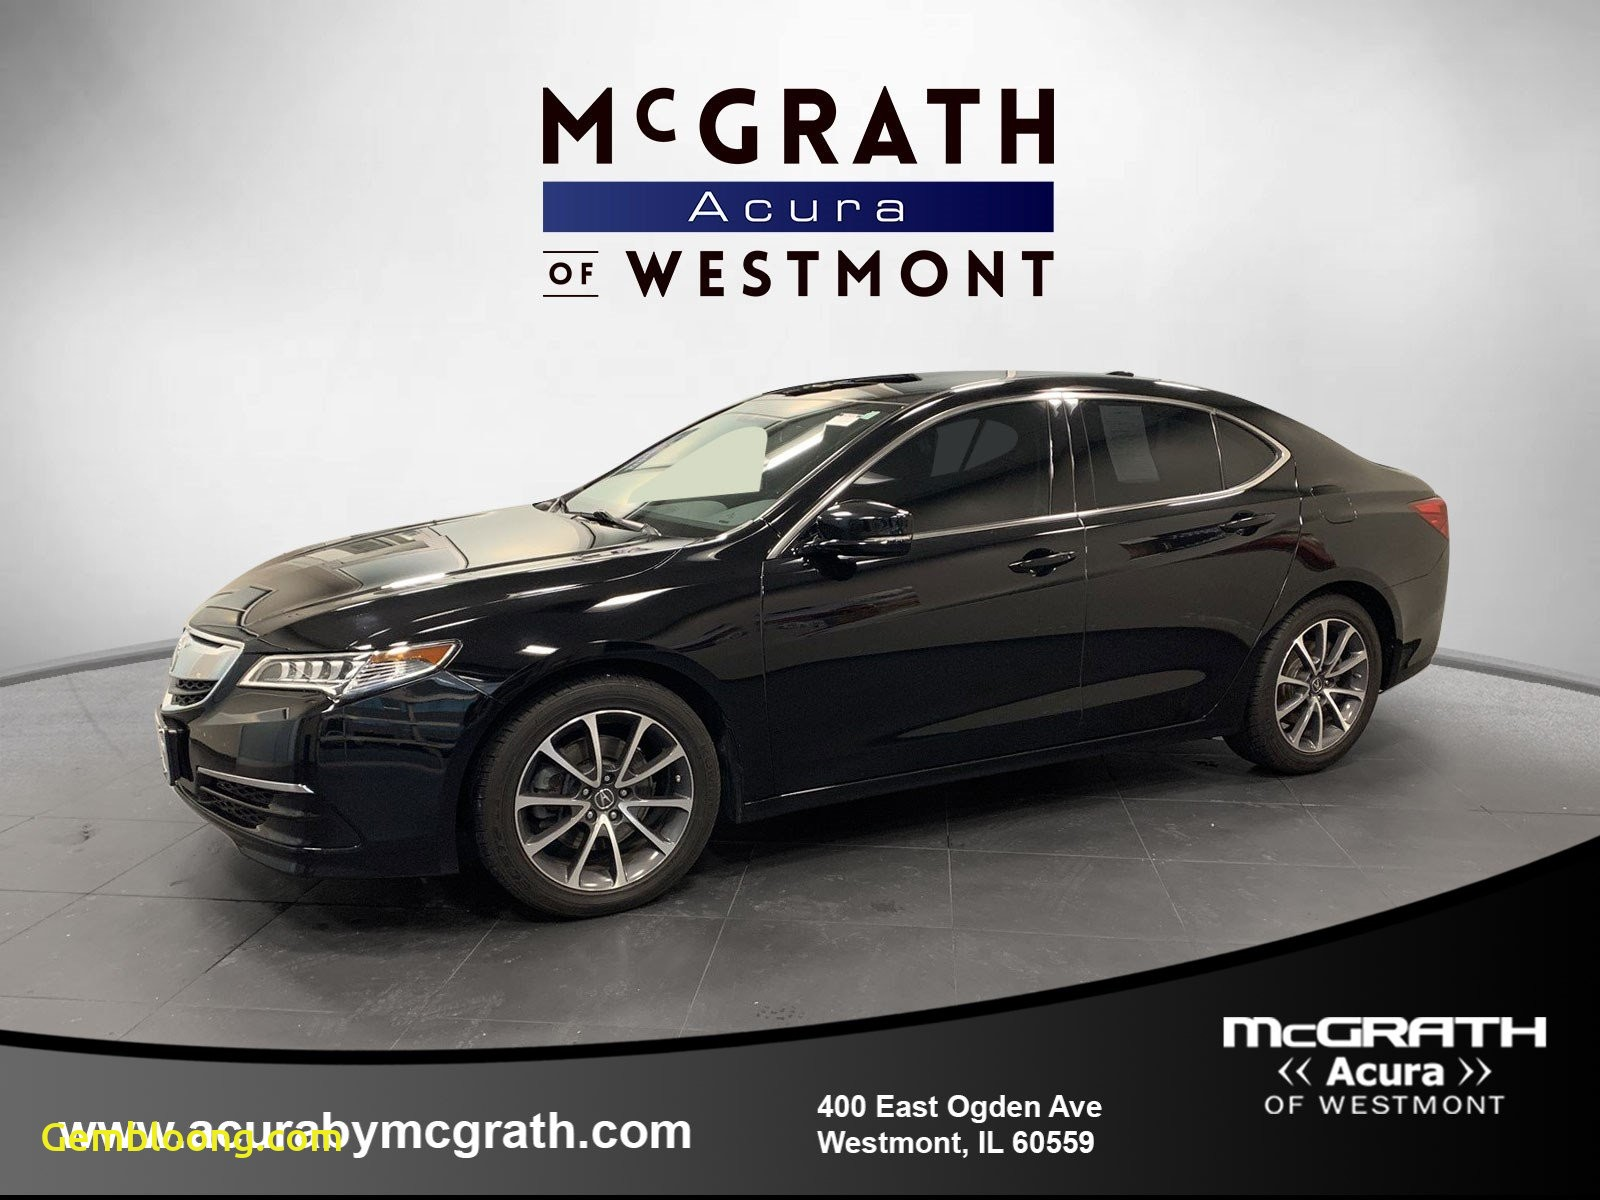 Used Cars for Sale Near Me Acura Unique Certified Pre Owned 2015 Acura Tlx 3 5 V 6 9 at P Aws with Technology Package with Navigation